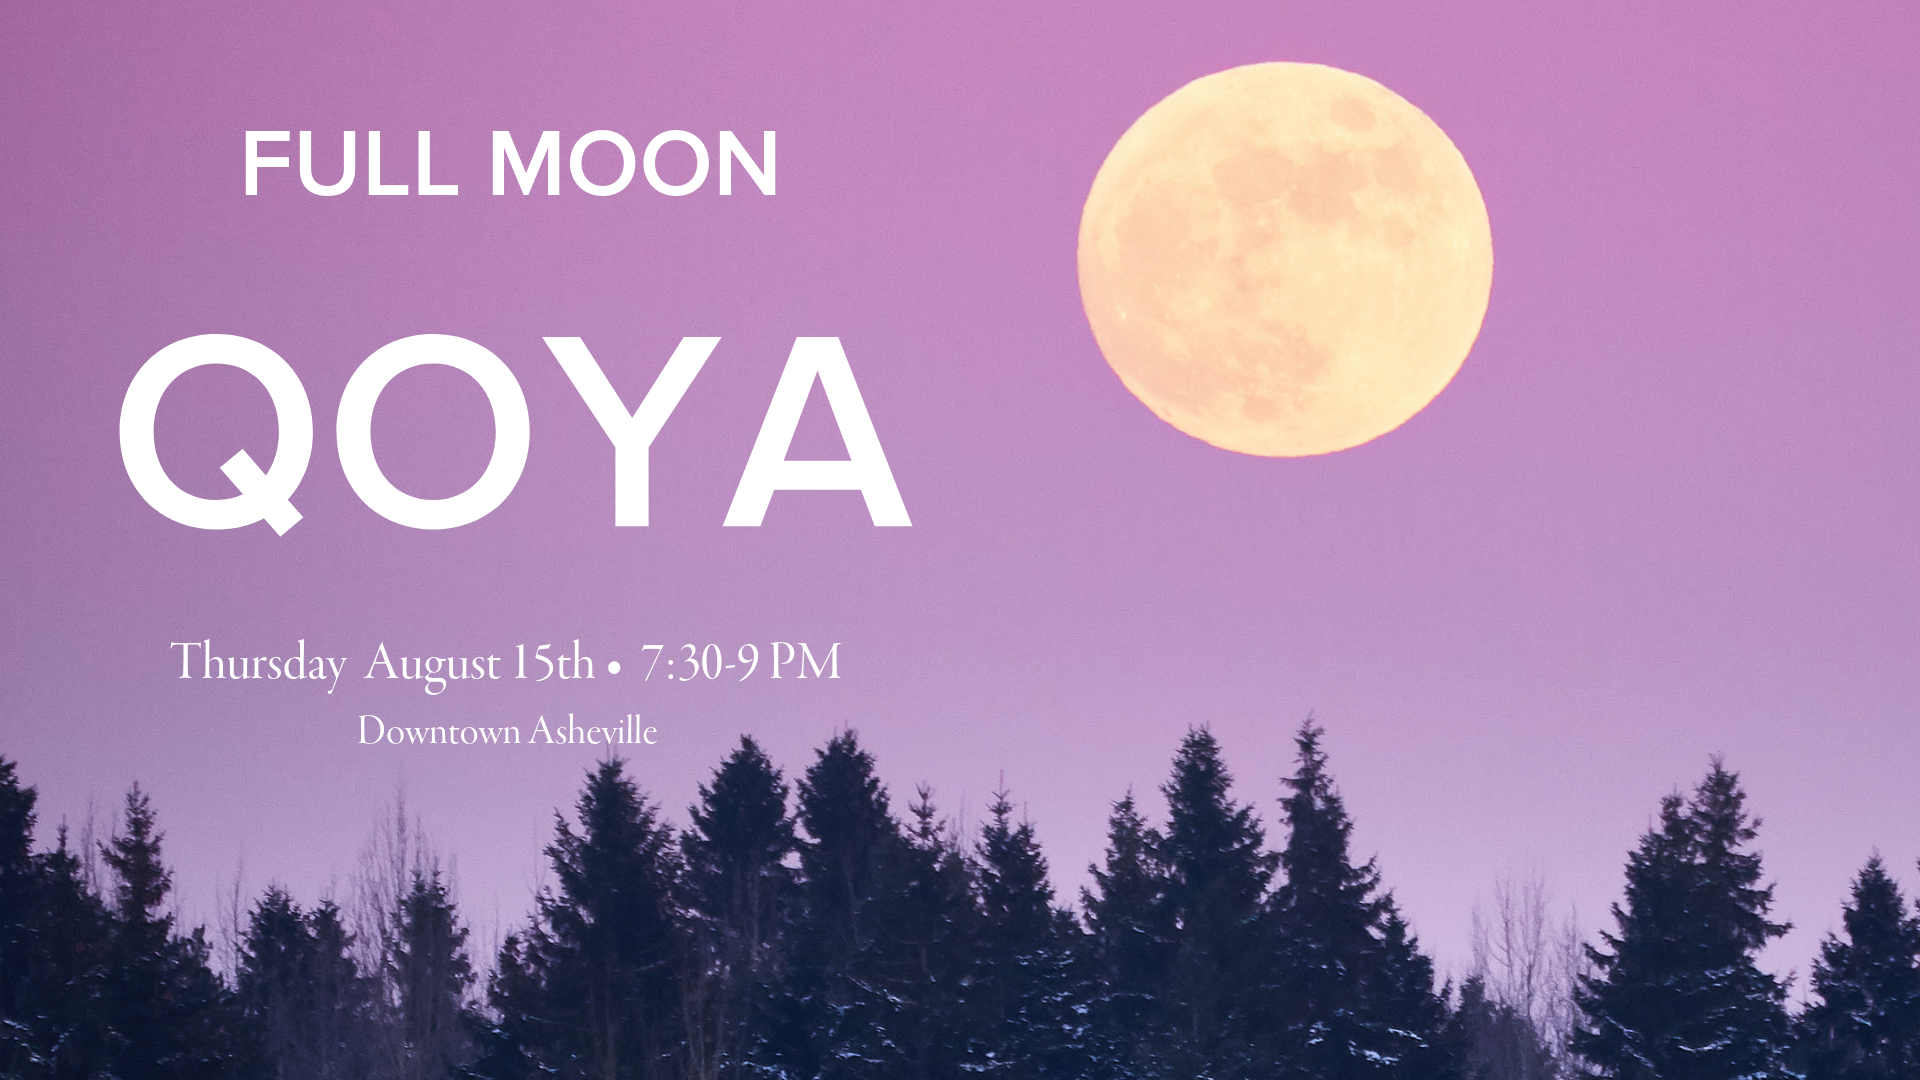 FULL MOON QOYA(2).png